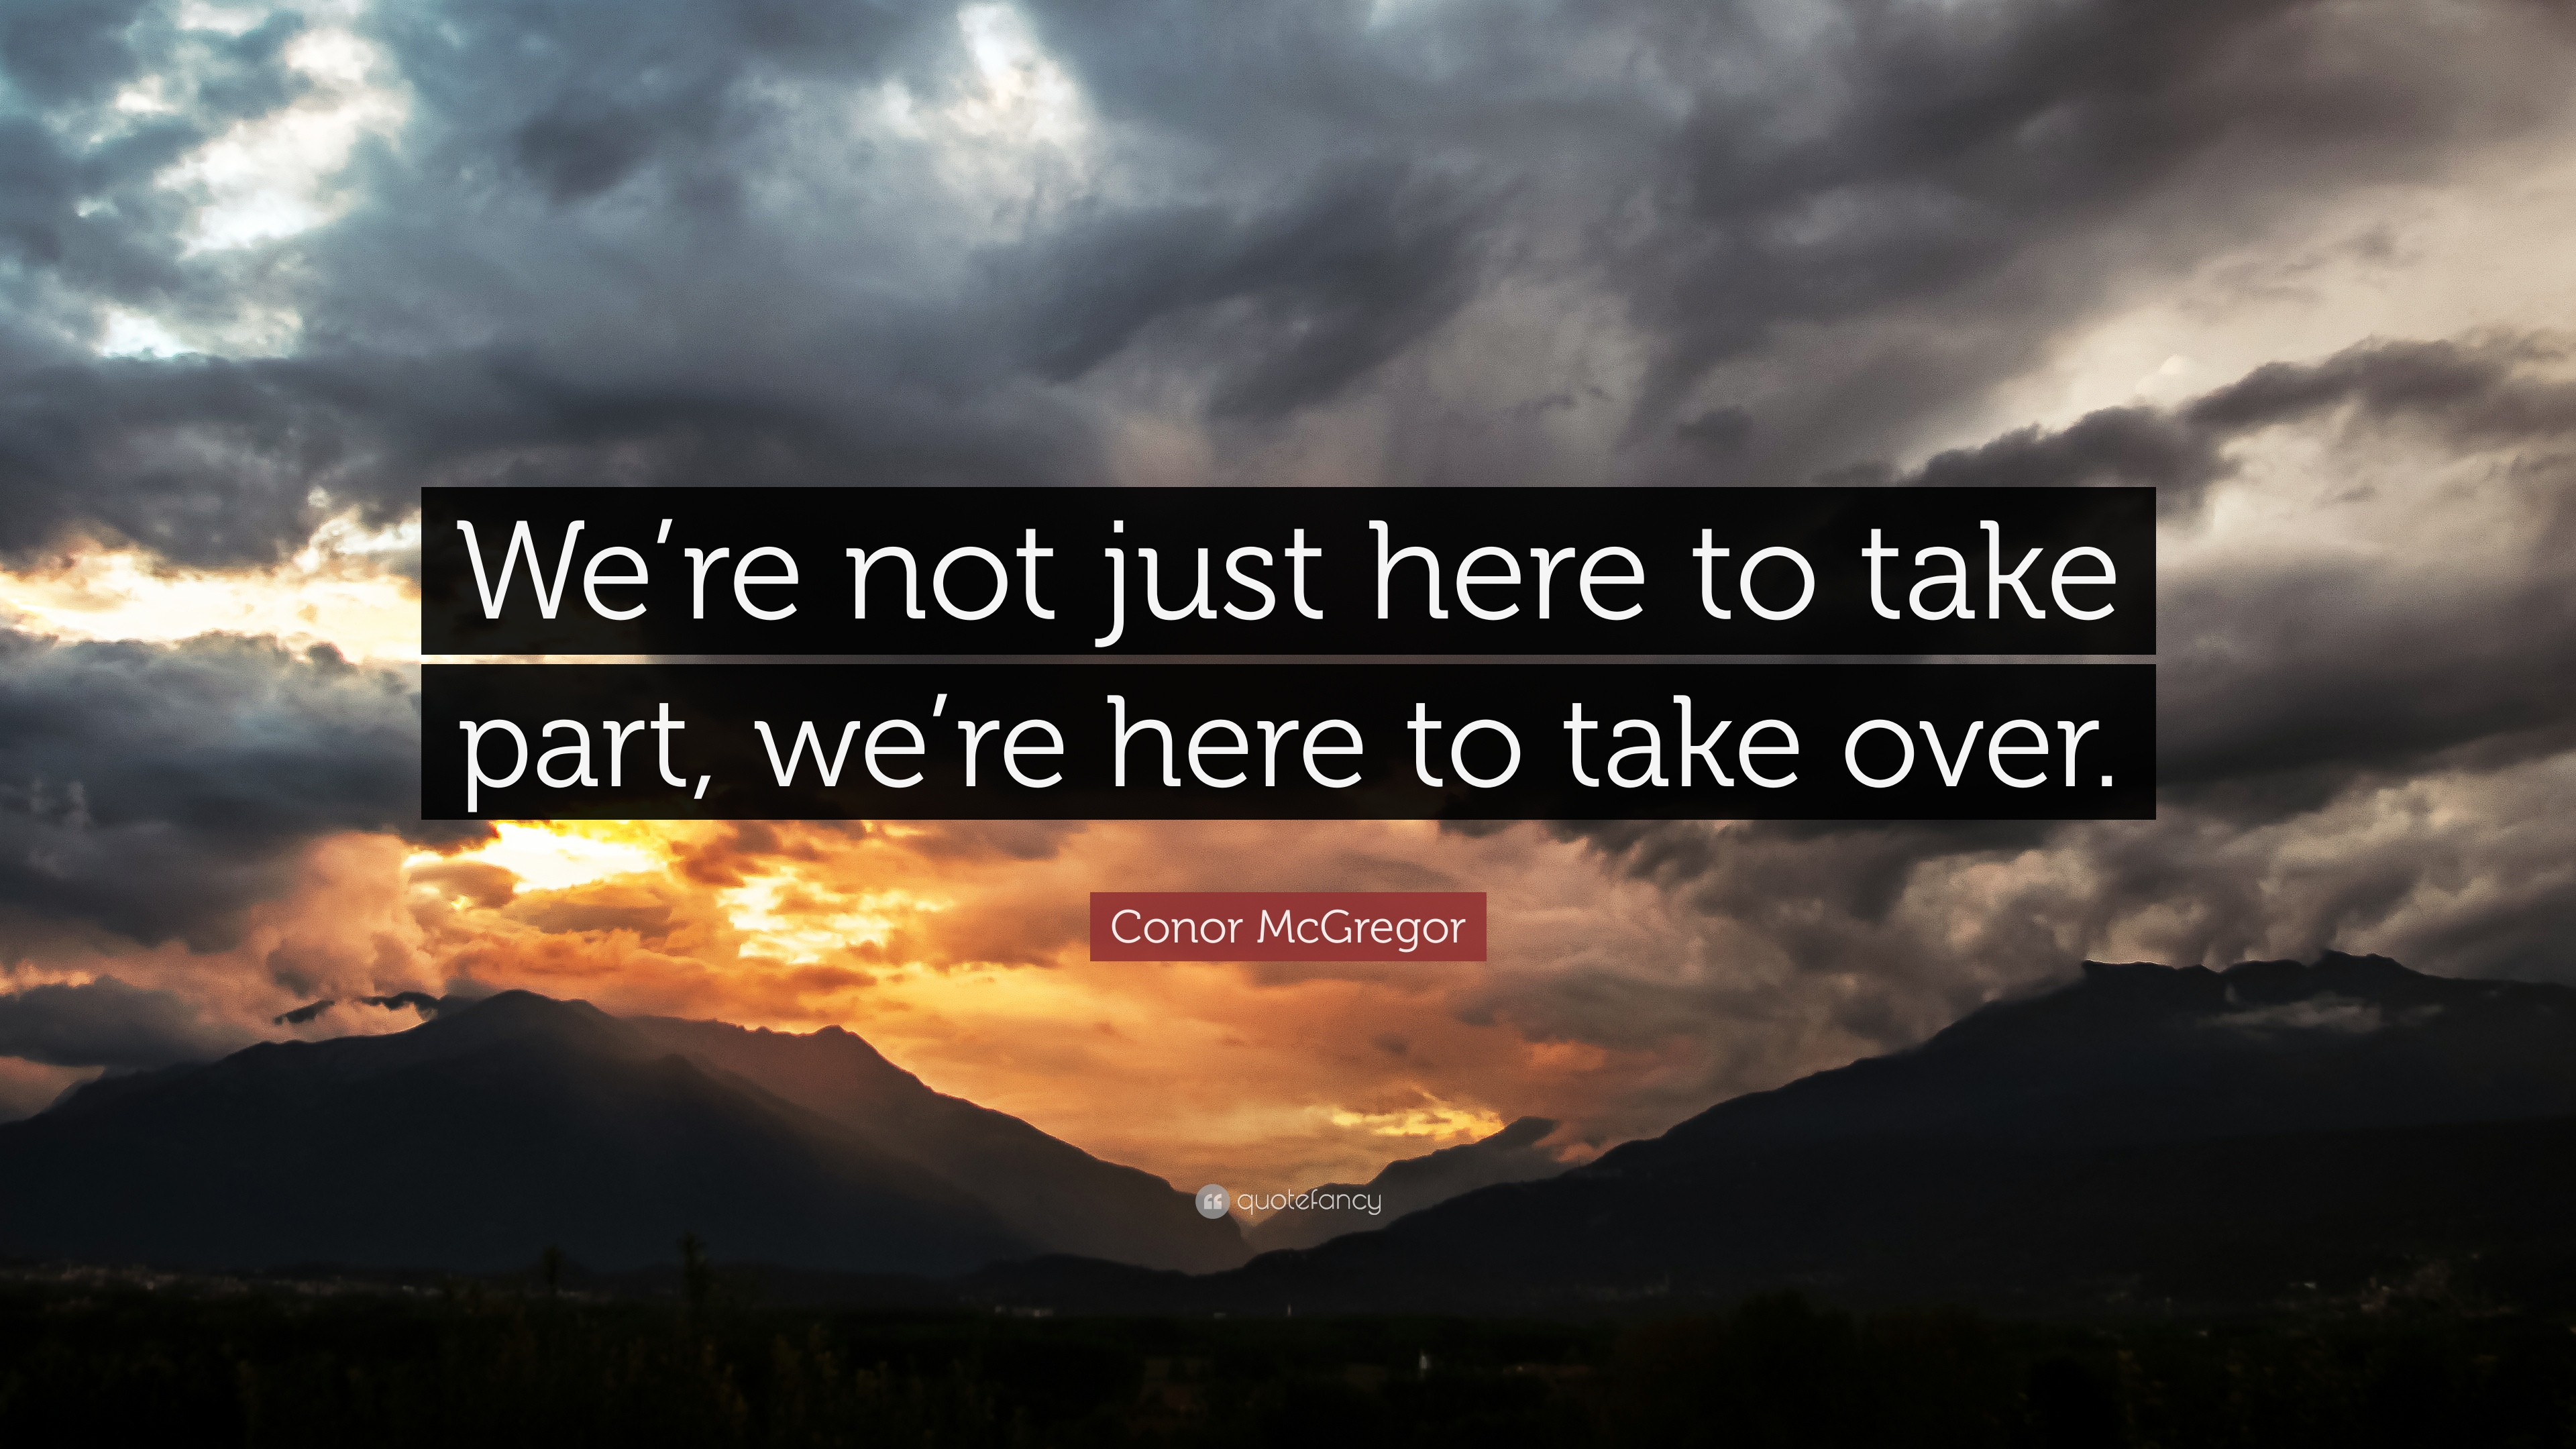 Conor Mcgregor Quote Wallpaper Conor Mcgregor Quote We Re Not Just Here To Take Part